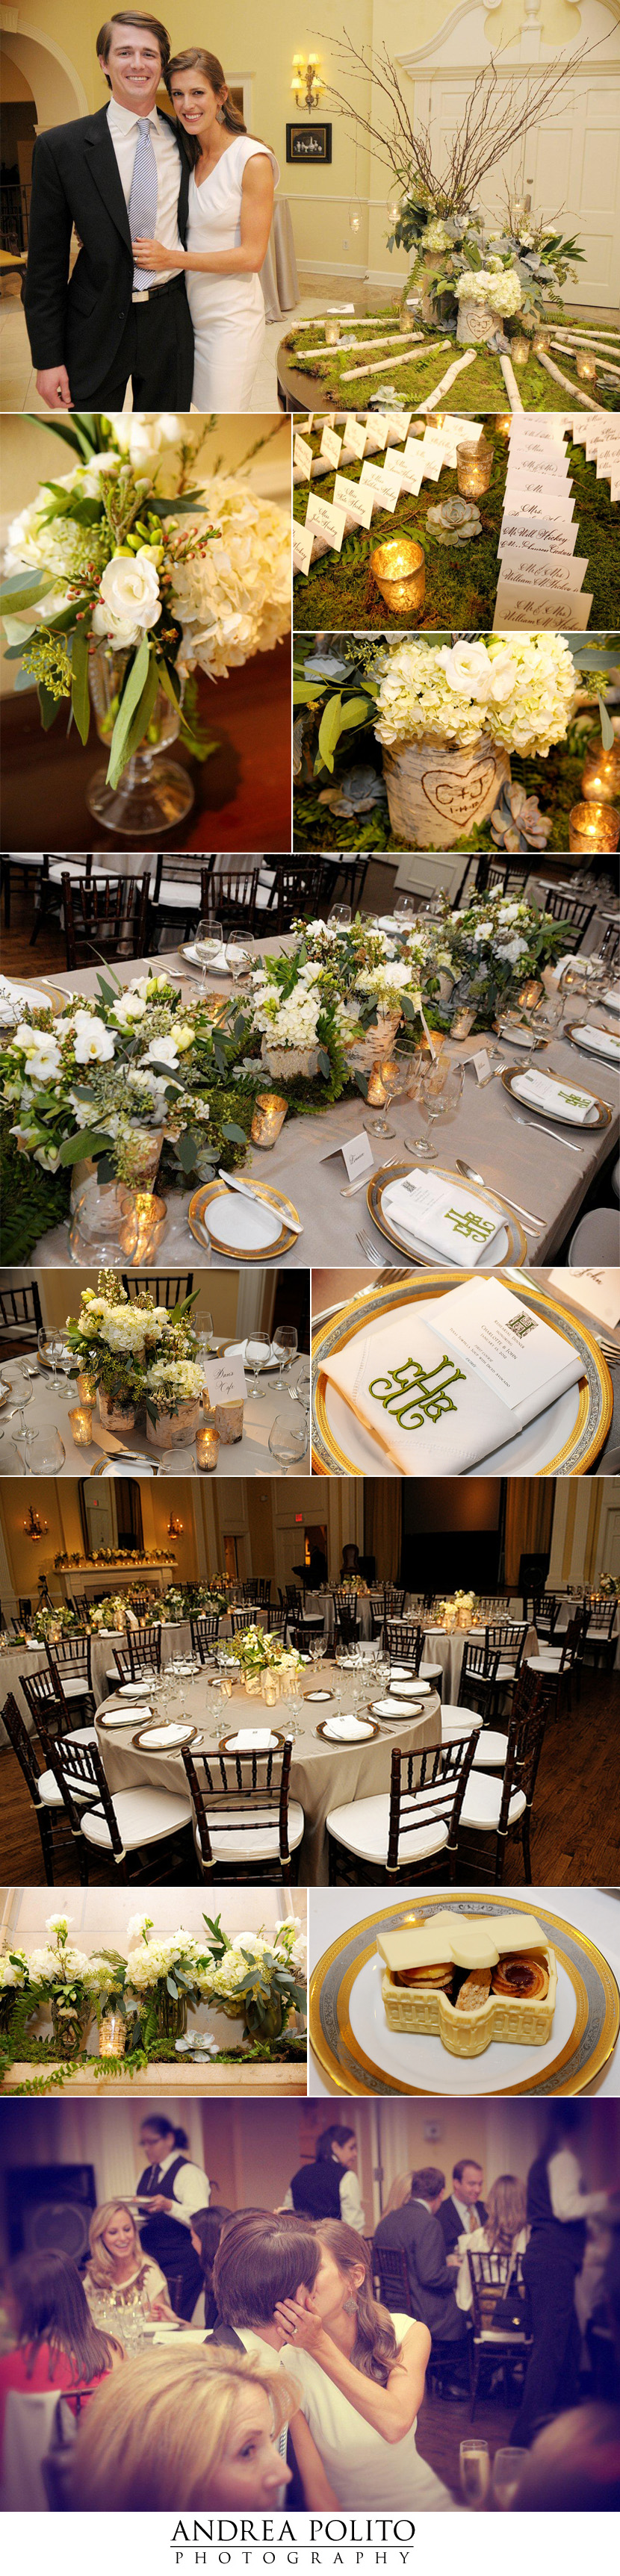 Dallas wedding rehearsal dinner at Arlington Hall coordinated by DFW Events